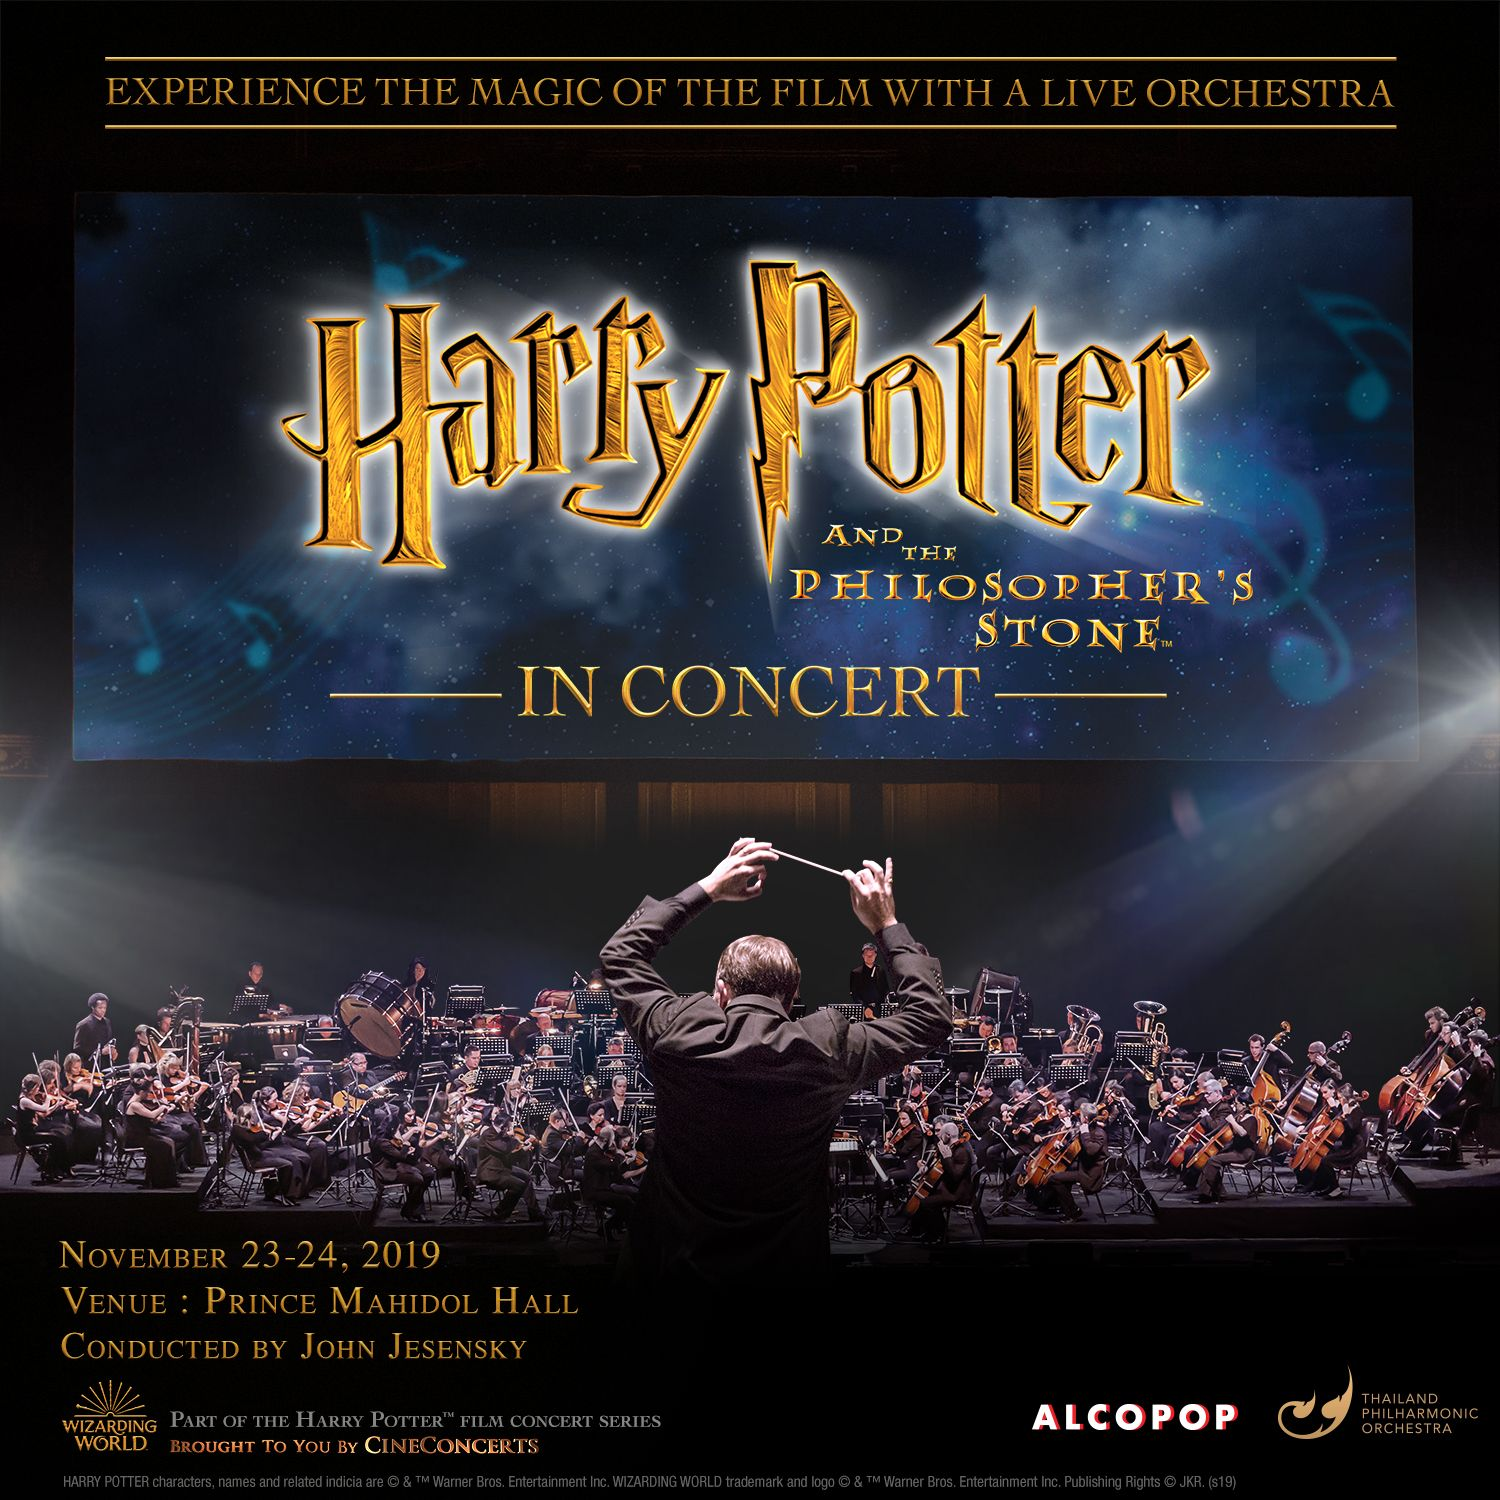 Harry Potter And The Philosopher's Stone In Concert Comes To Bangkok